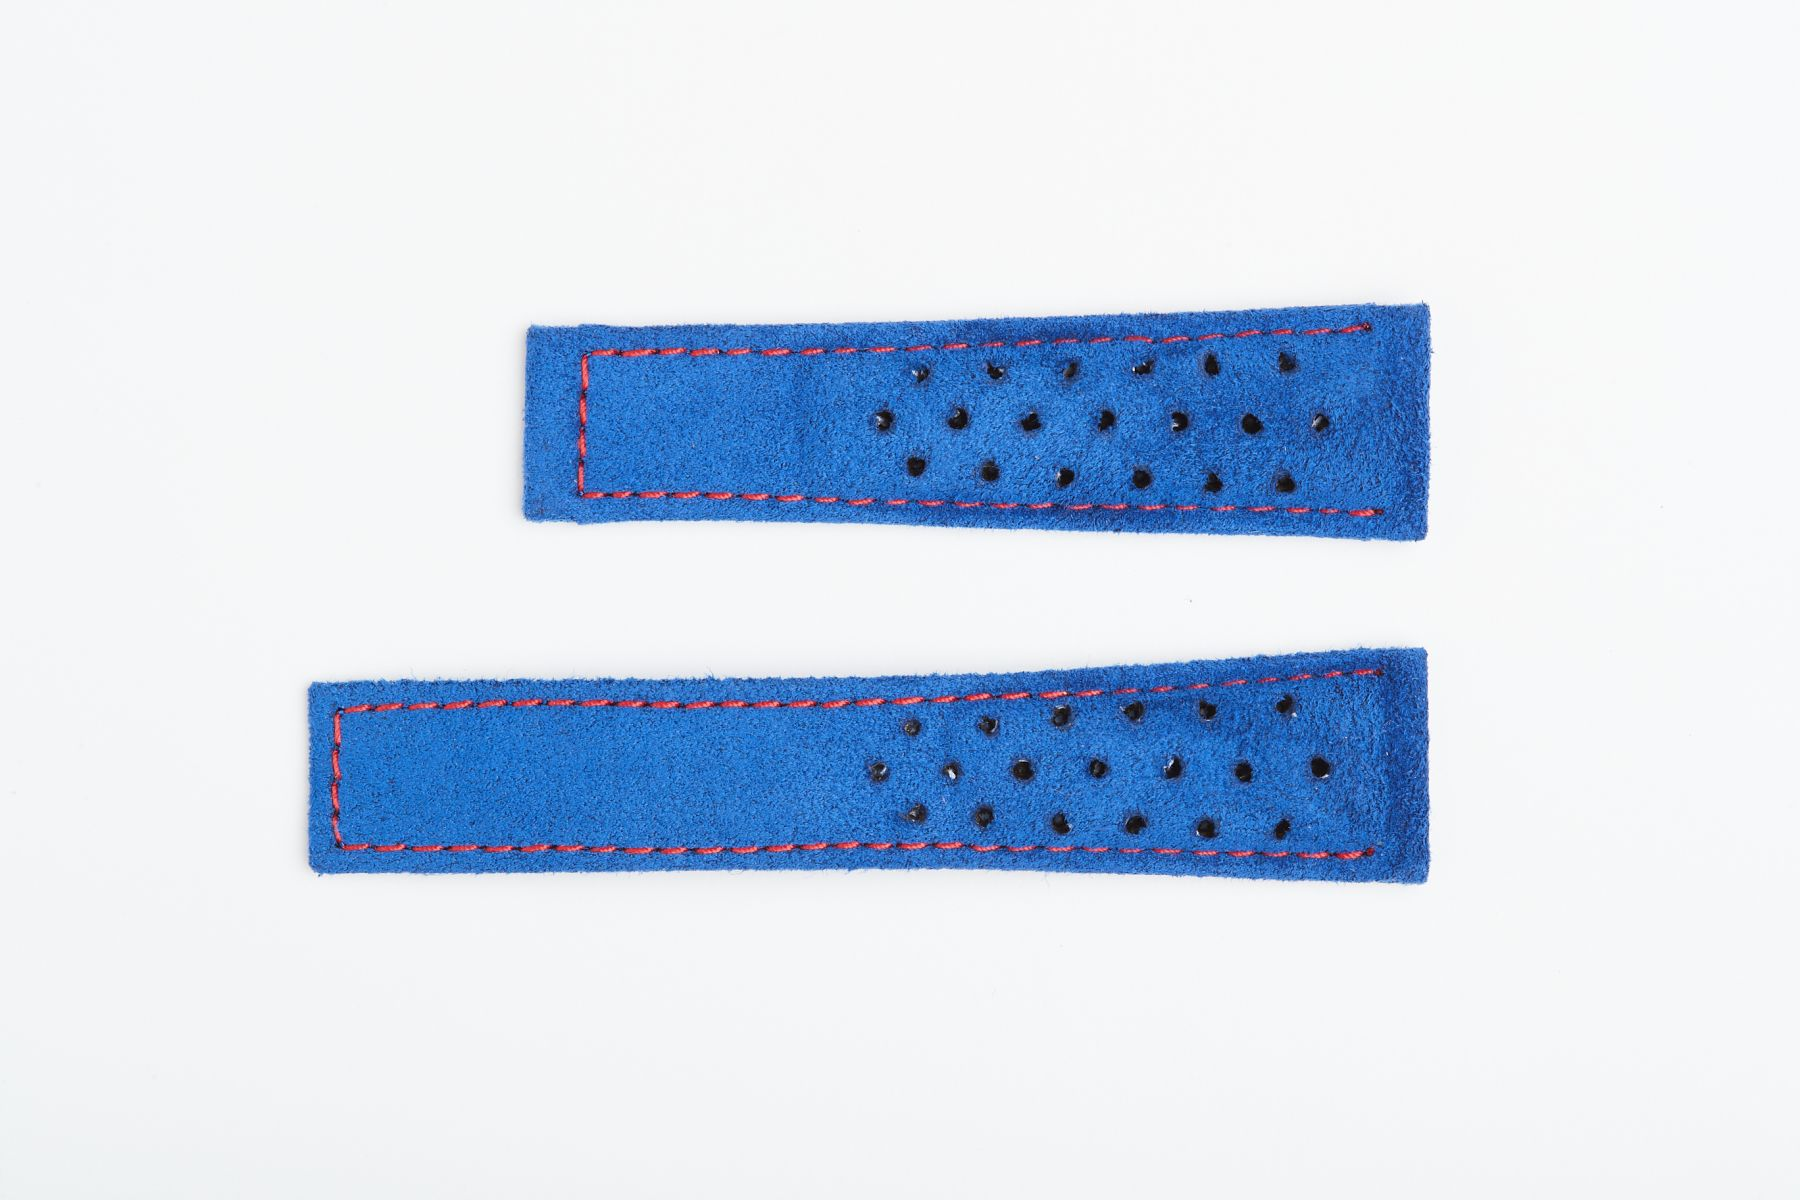 Baltic Blue Italian Alcantara Speedy Watch Band 22mm Tag Heuer Monaco style. Red stitching. Perforated Profile